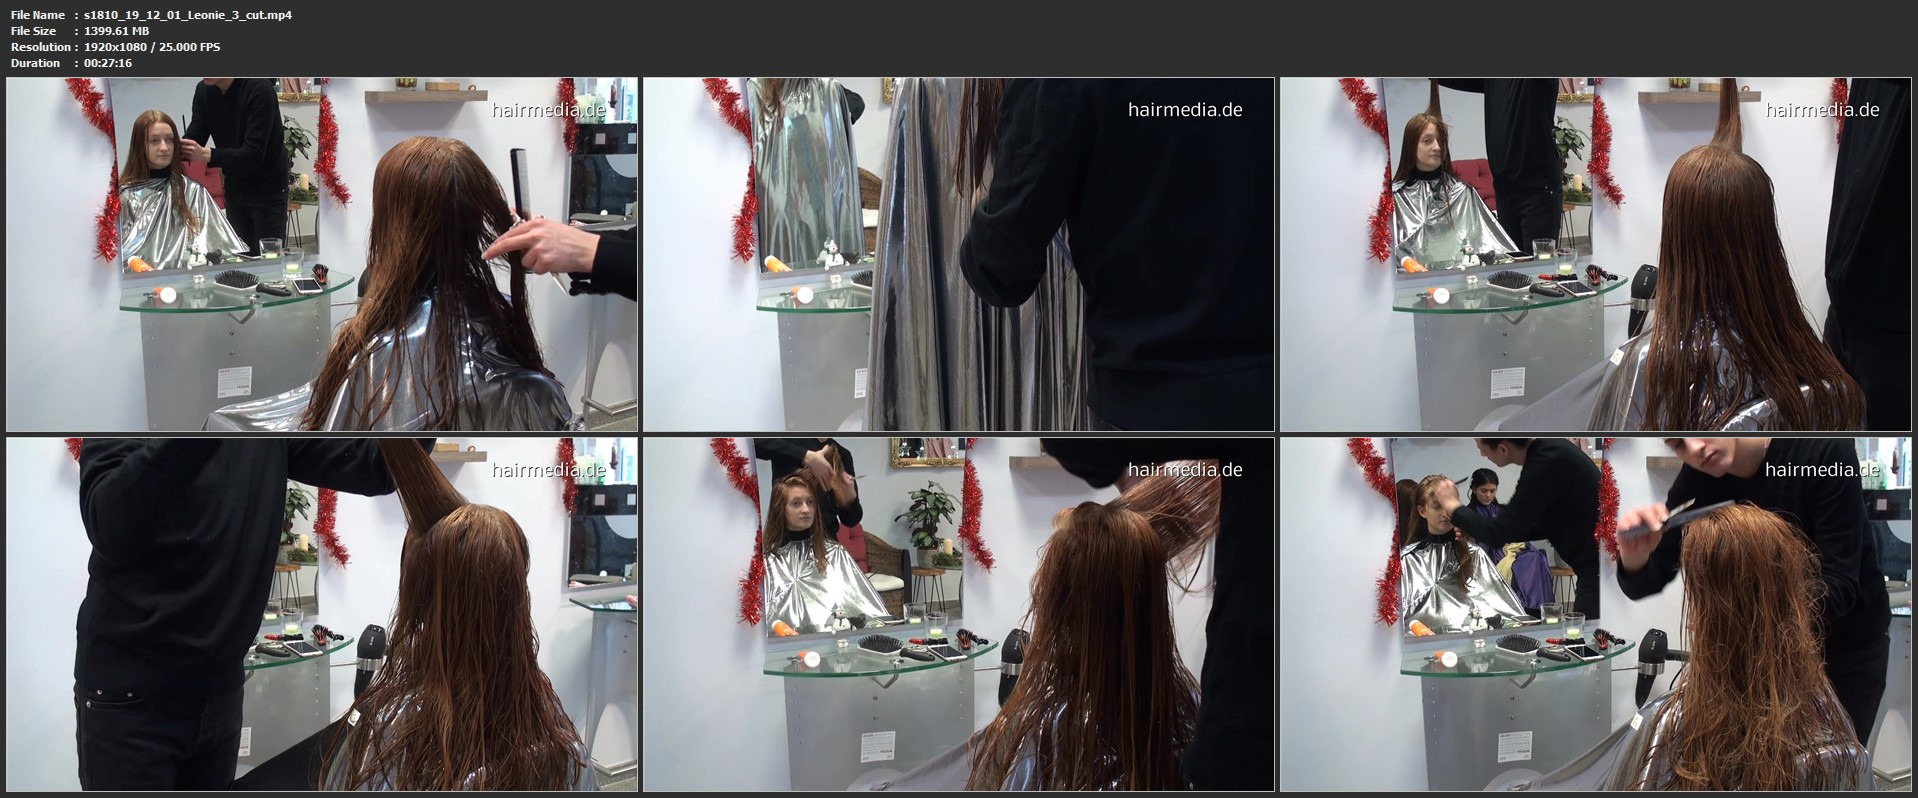 8154 Leonie  haircutting complete 63 min HD video for download